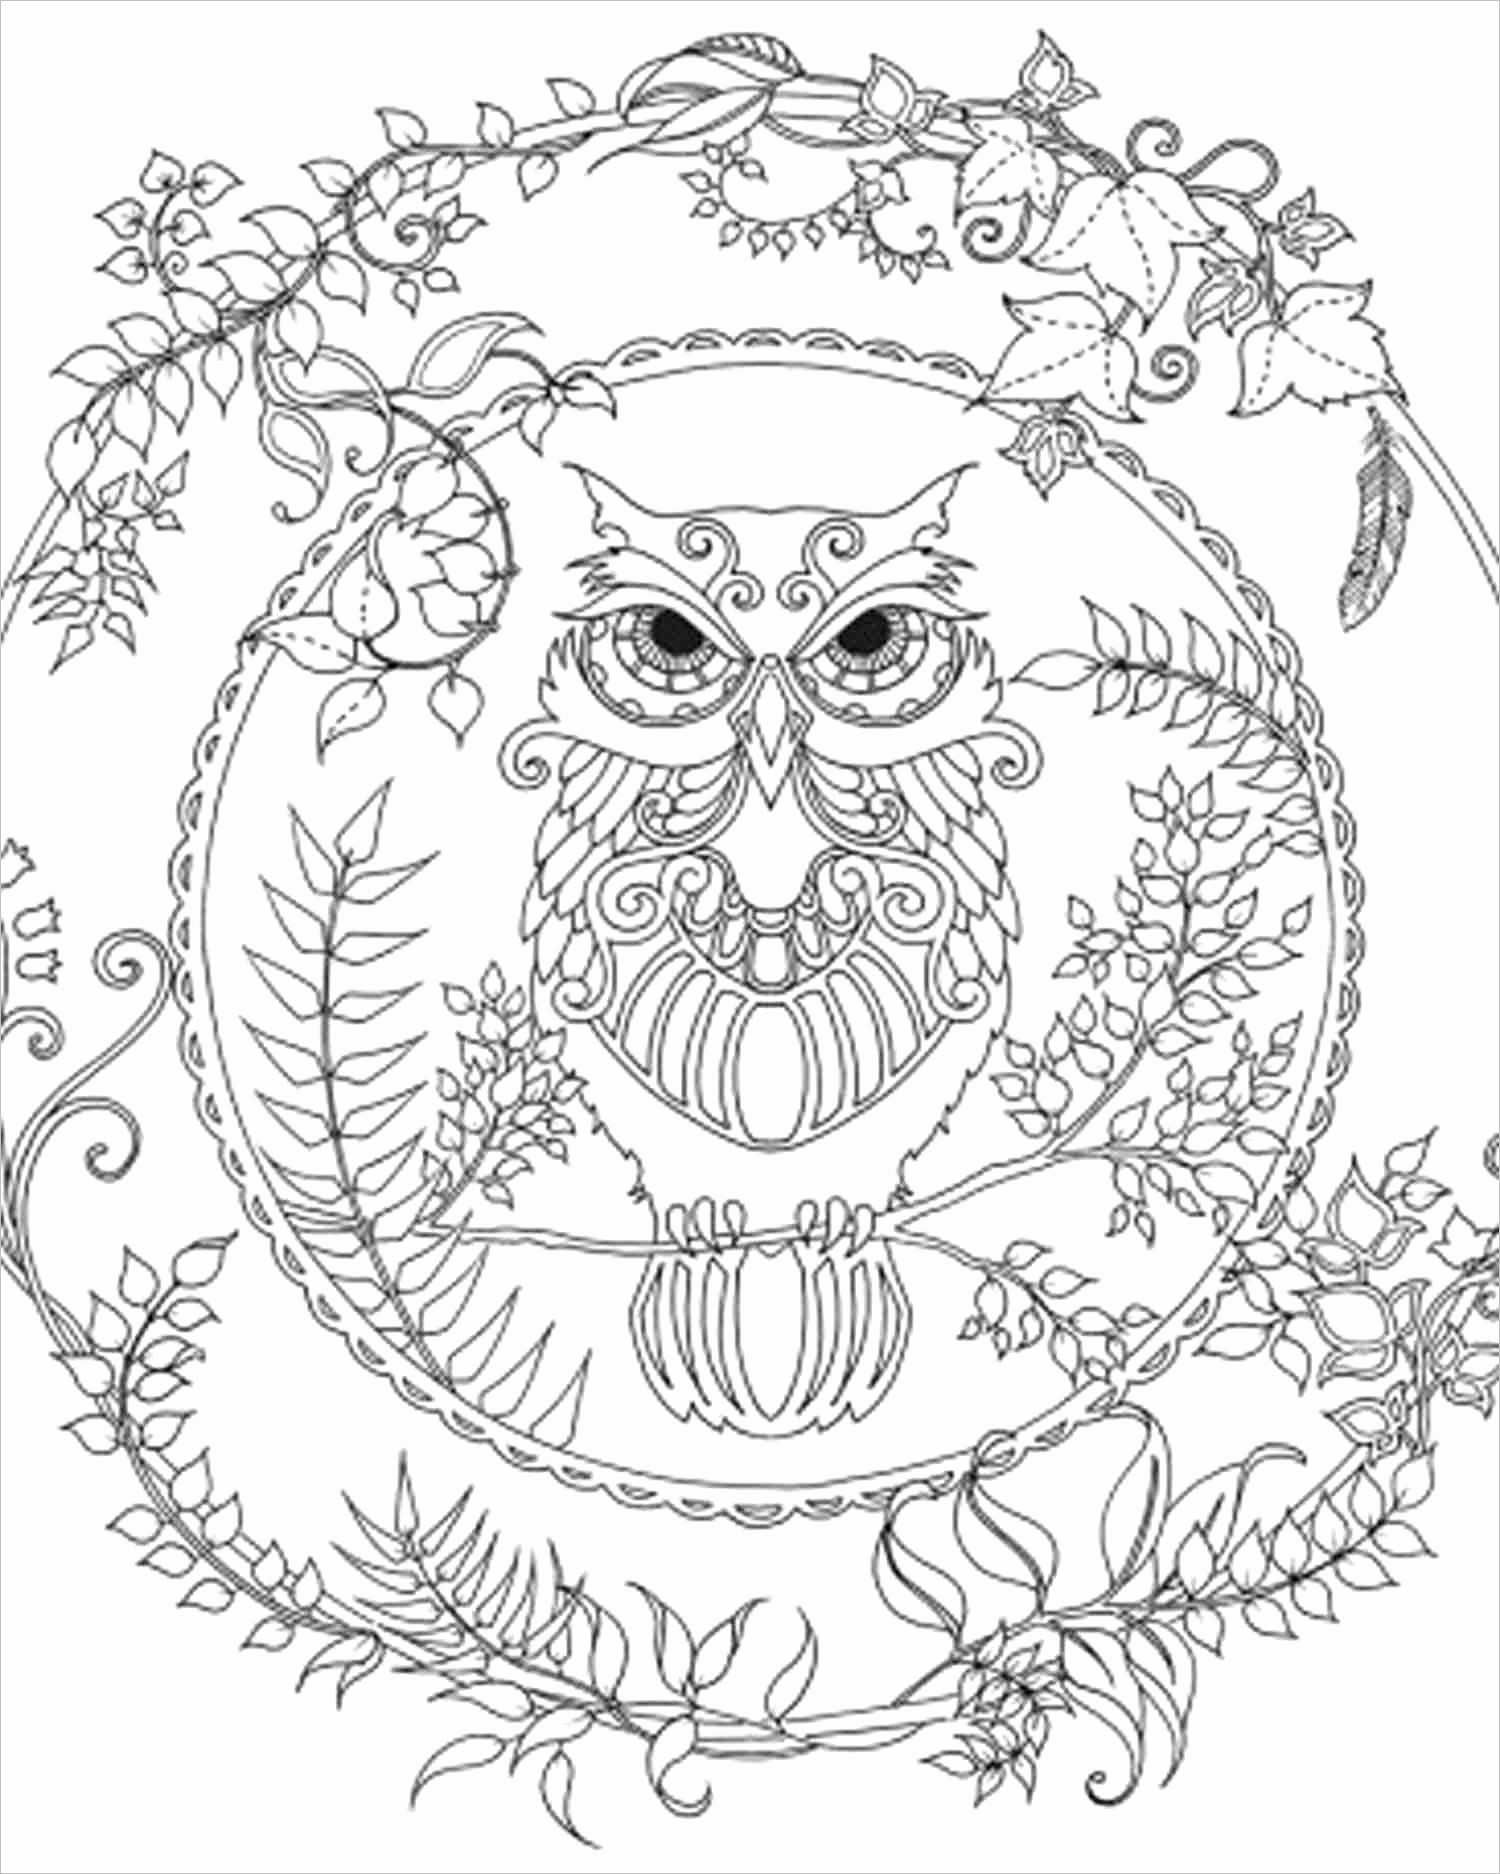 Framed Coloring Pages  Download 20t - Free For Children